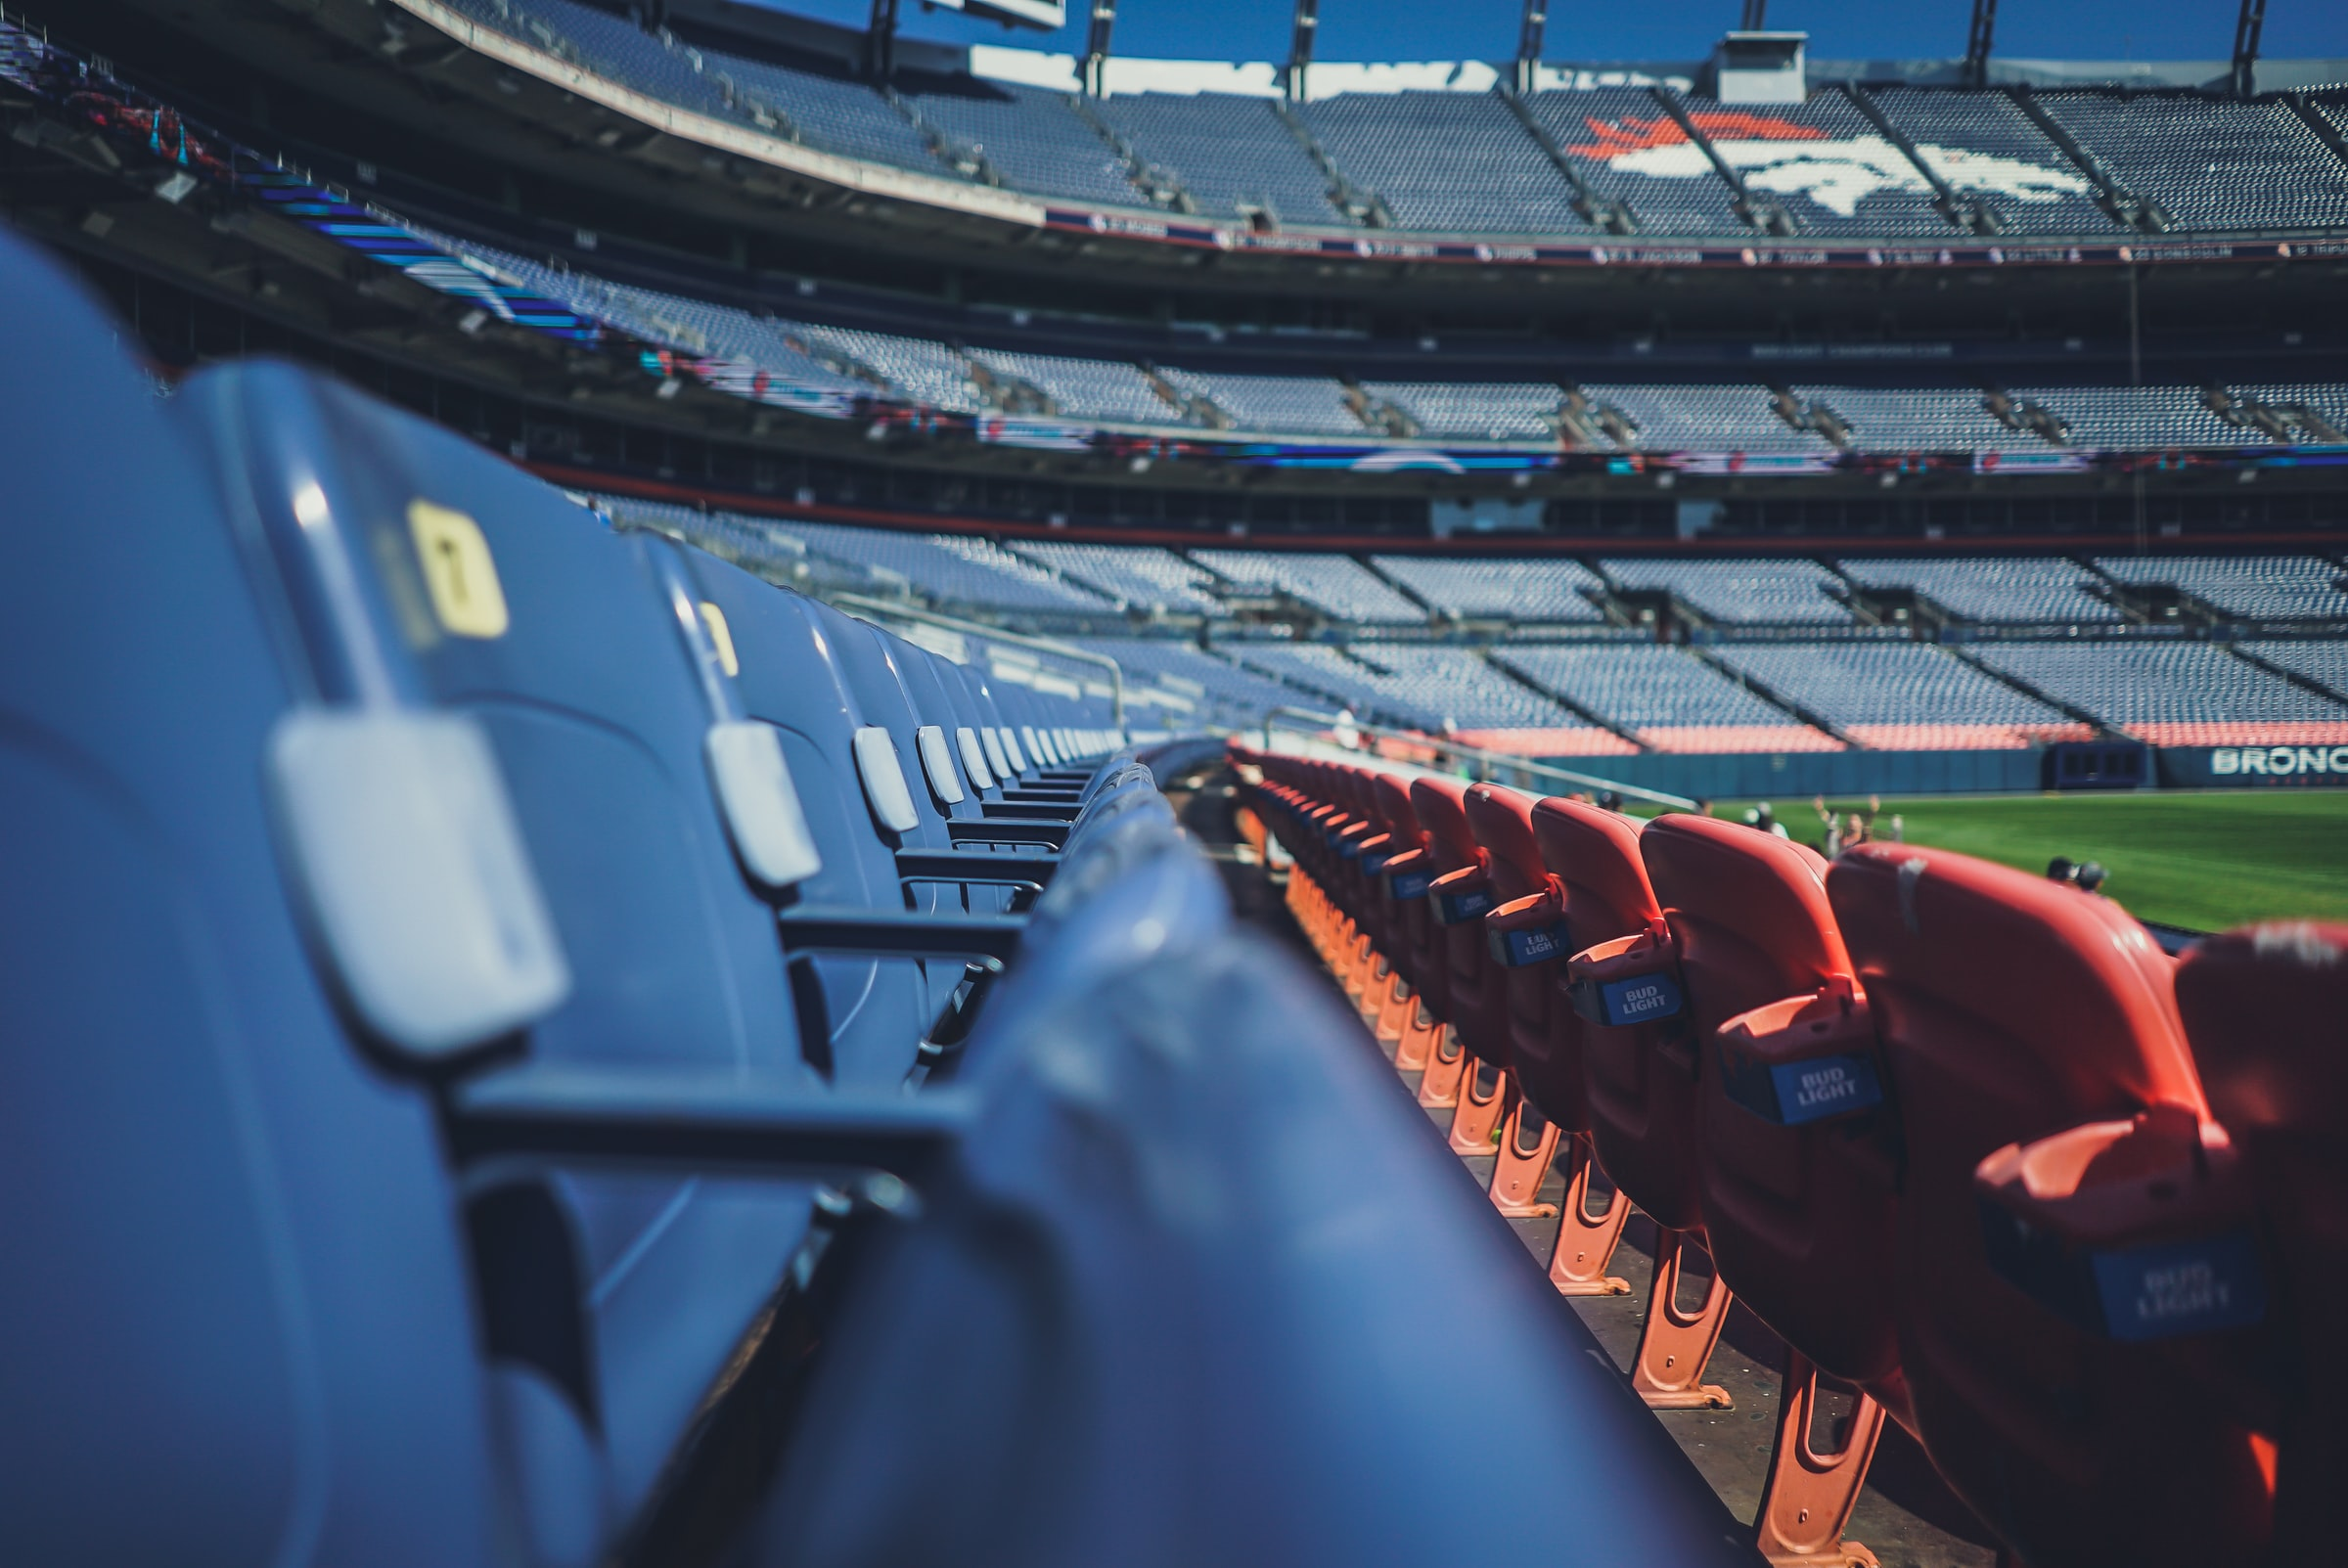 Alternative Sports: How to reach sports enthusiasts outside of live sporting events